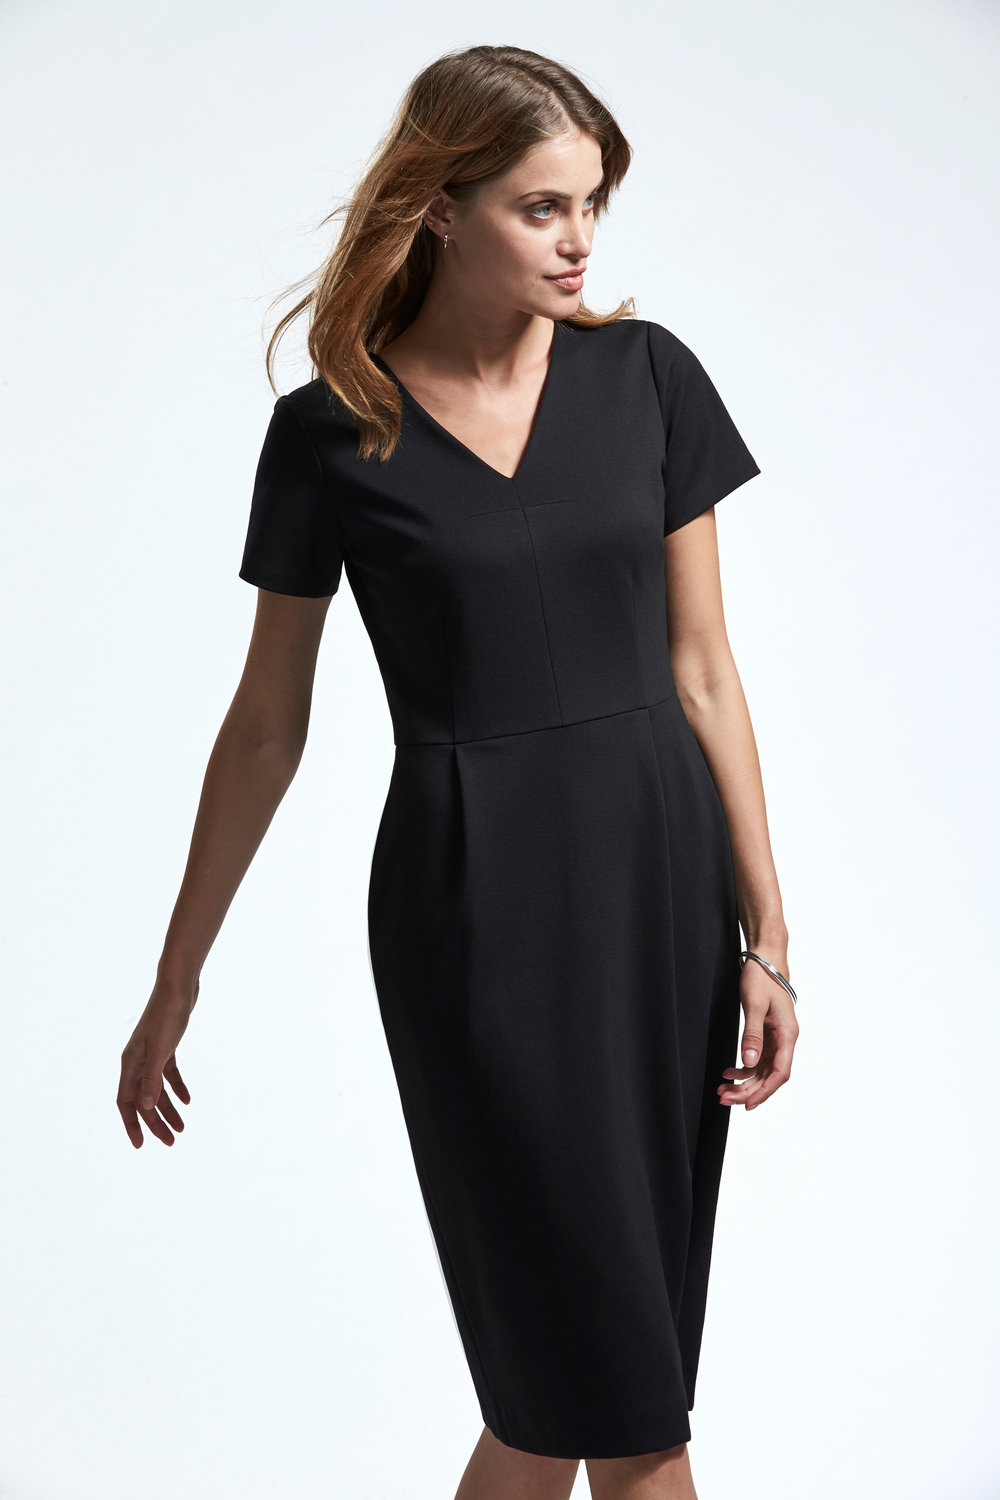 health care age care uniform black ponte dress